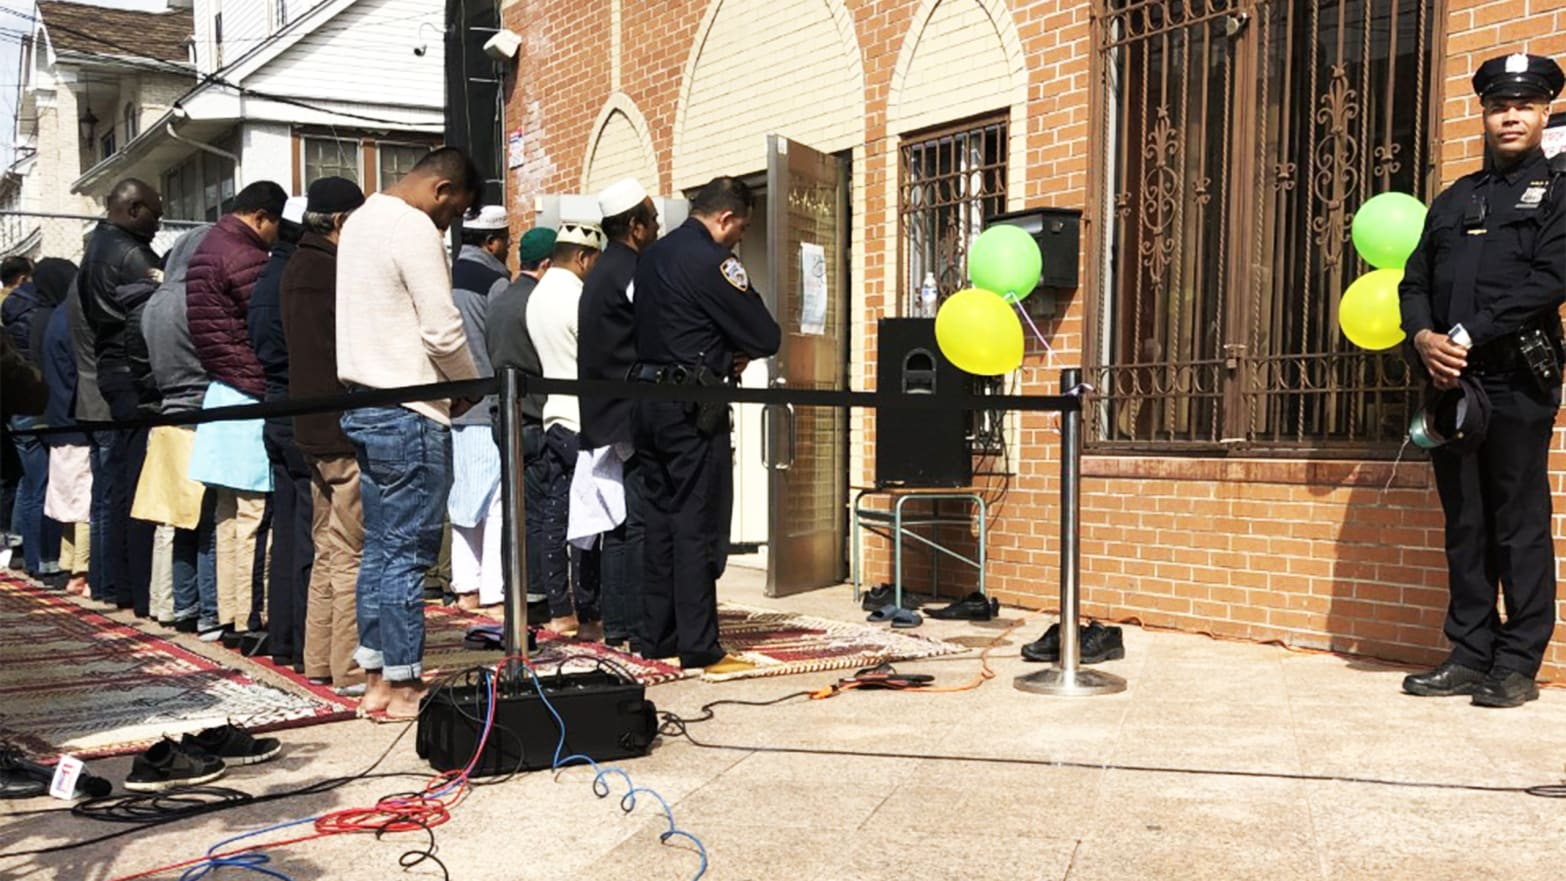 Nz Massacre: A Day After New Zealand Mosque Massacre, NYPD Watches As